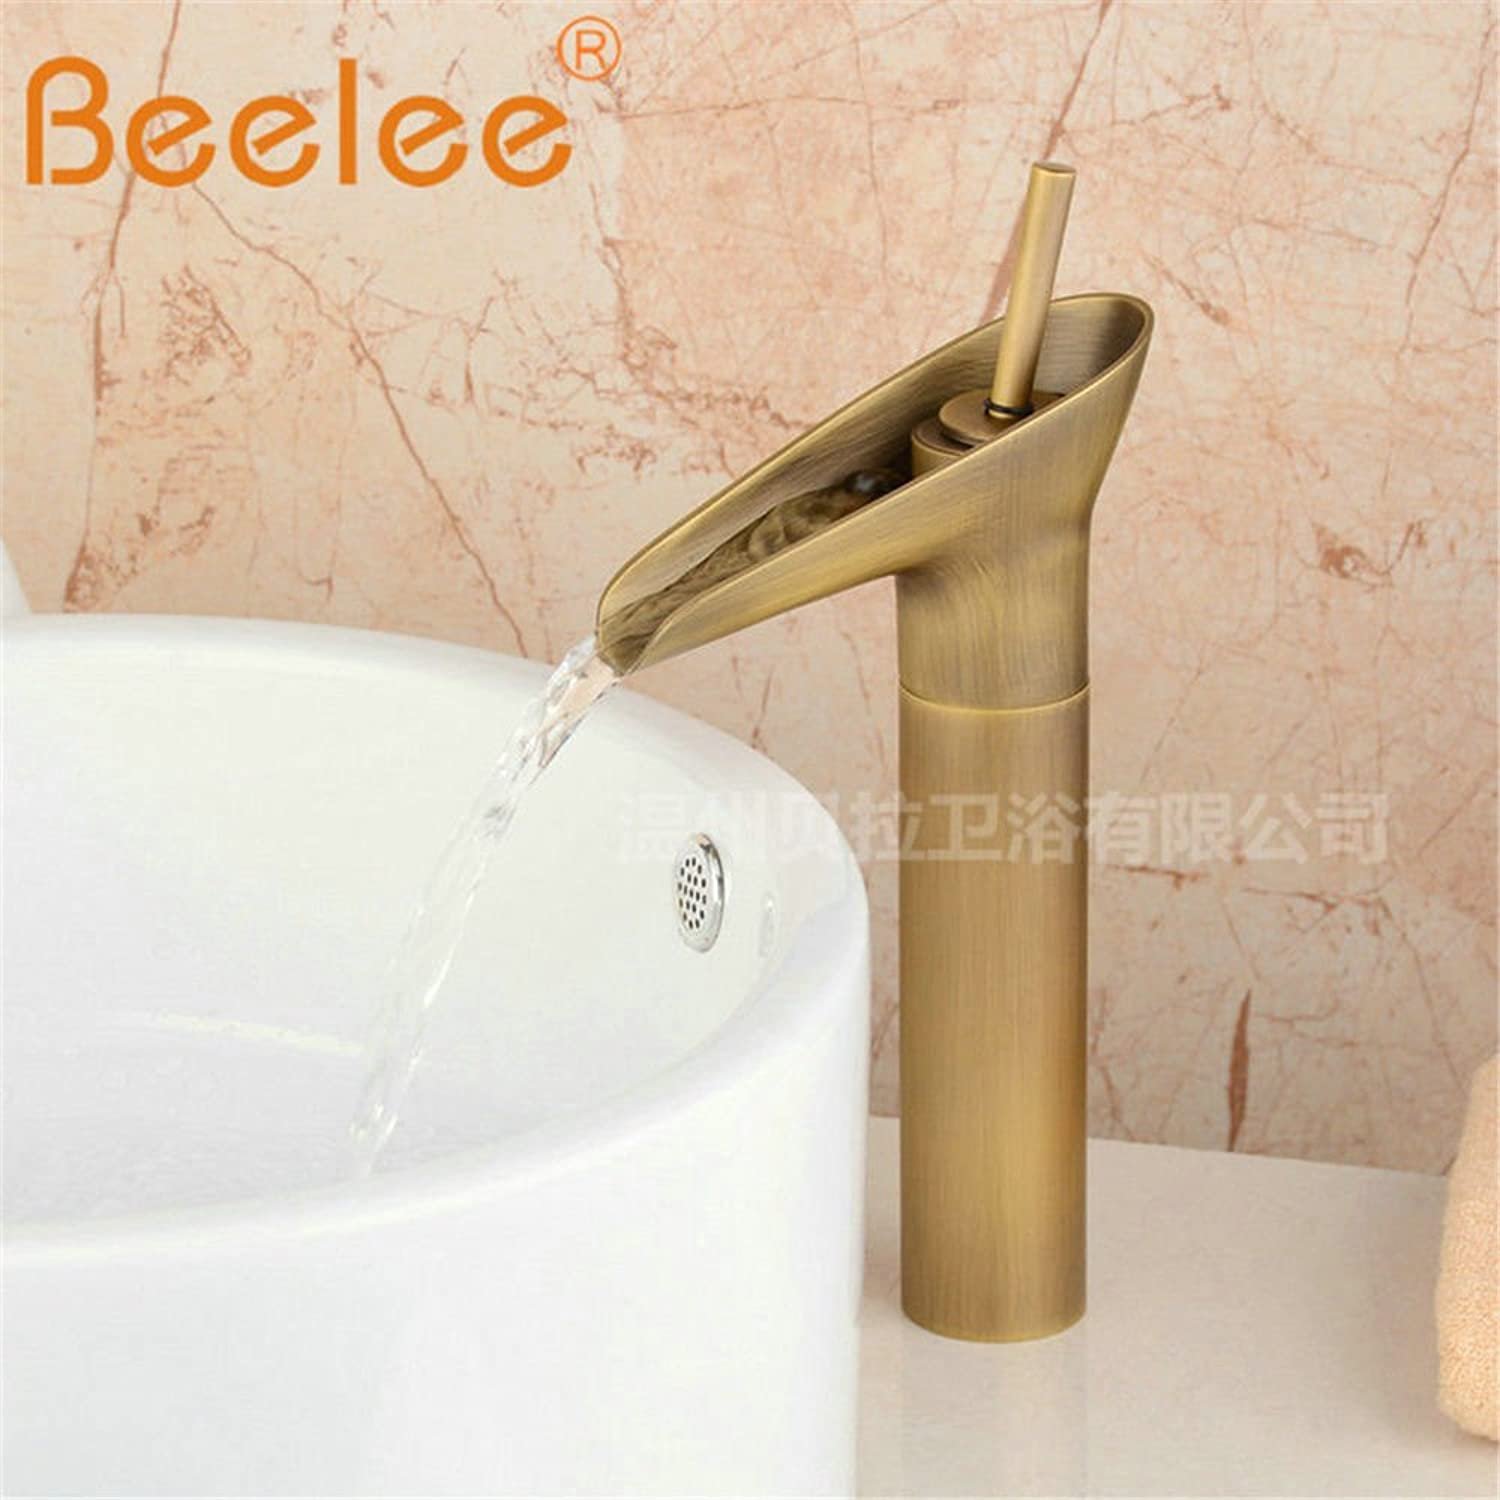 ETERNAL QUALITY Bathroom Sink Basin Tap Brass Mixer Tap Washroom Mixer Faucet Brass antique black antique table basin waterfall of hot and cold glass of high-basin water